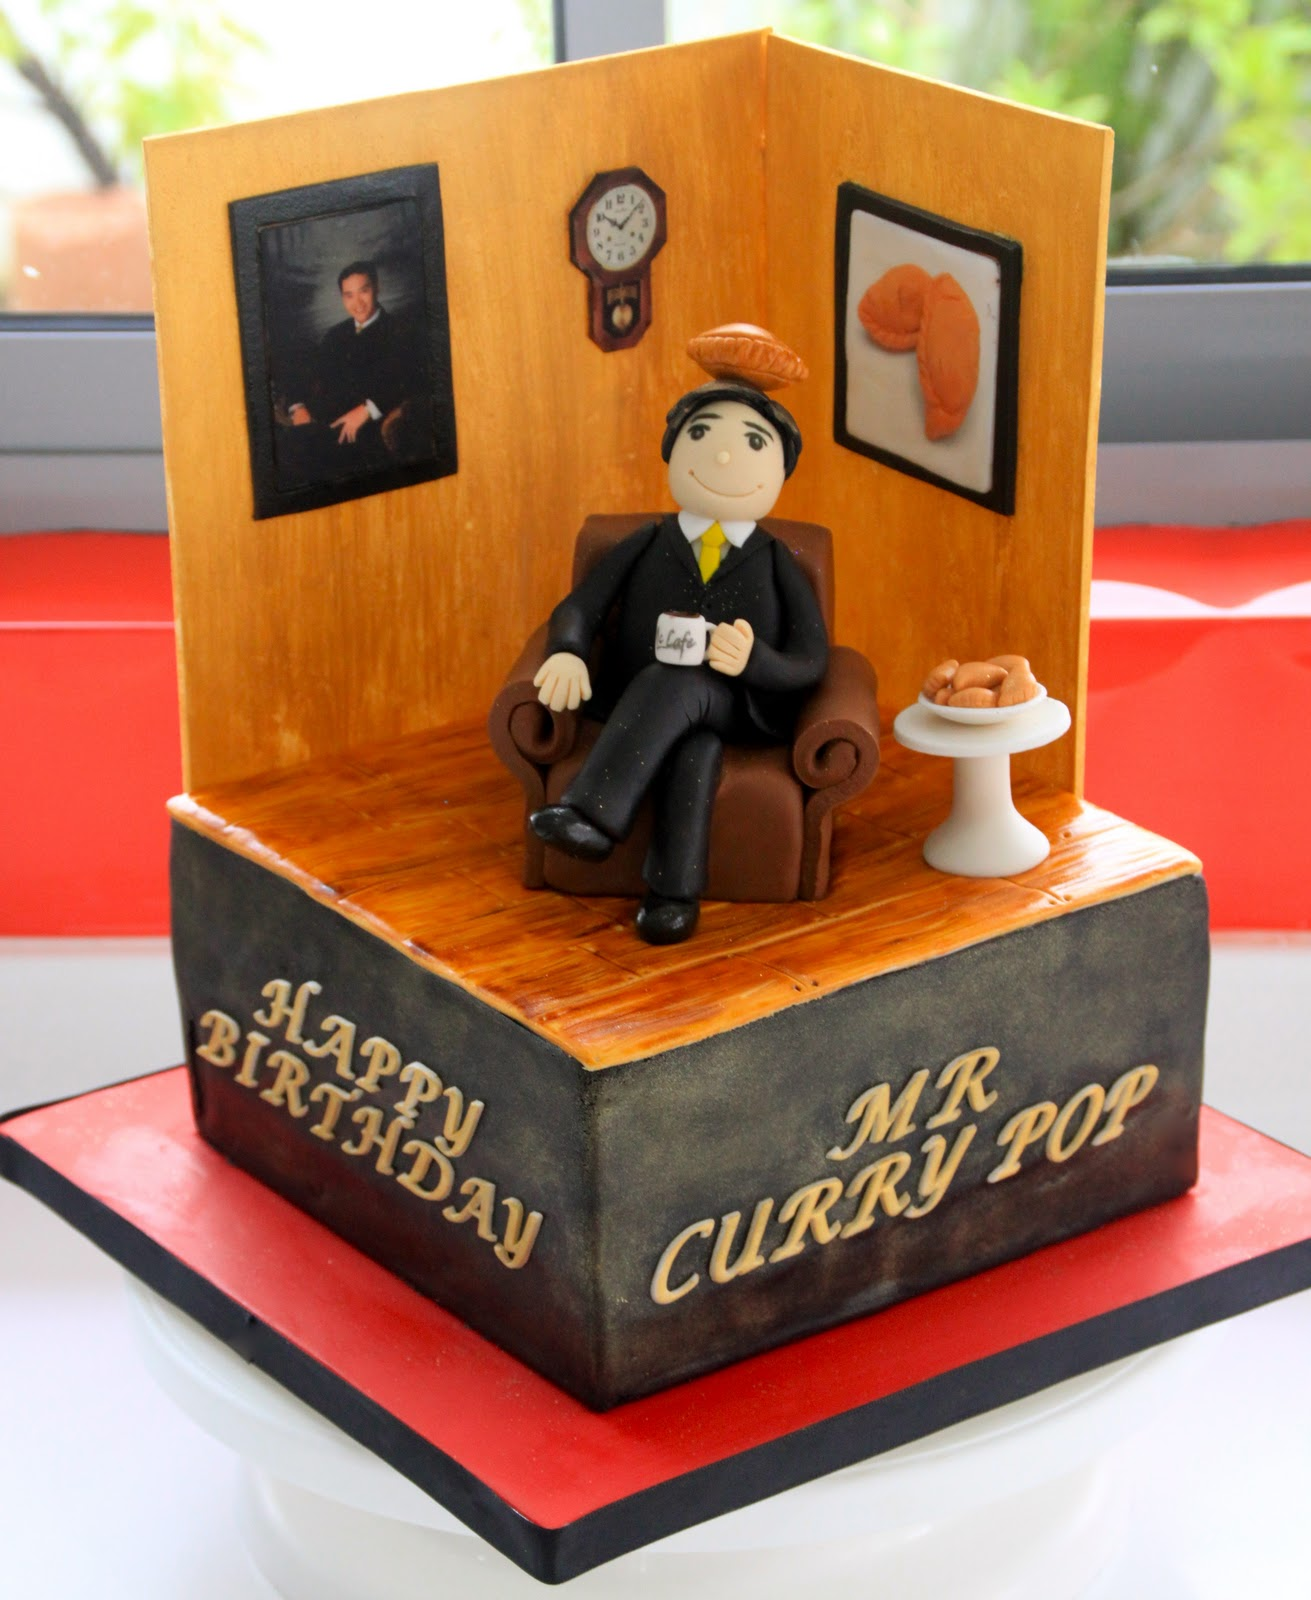 Celebrate With Cake Mr Curry Puff Room Cake